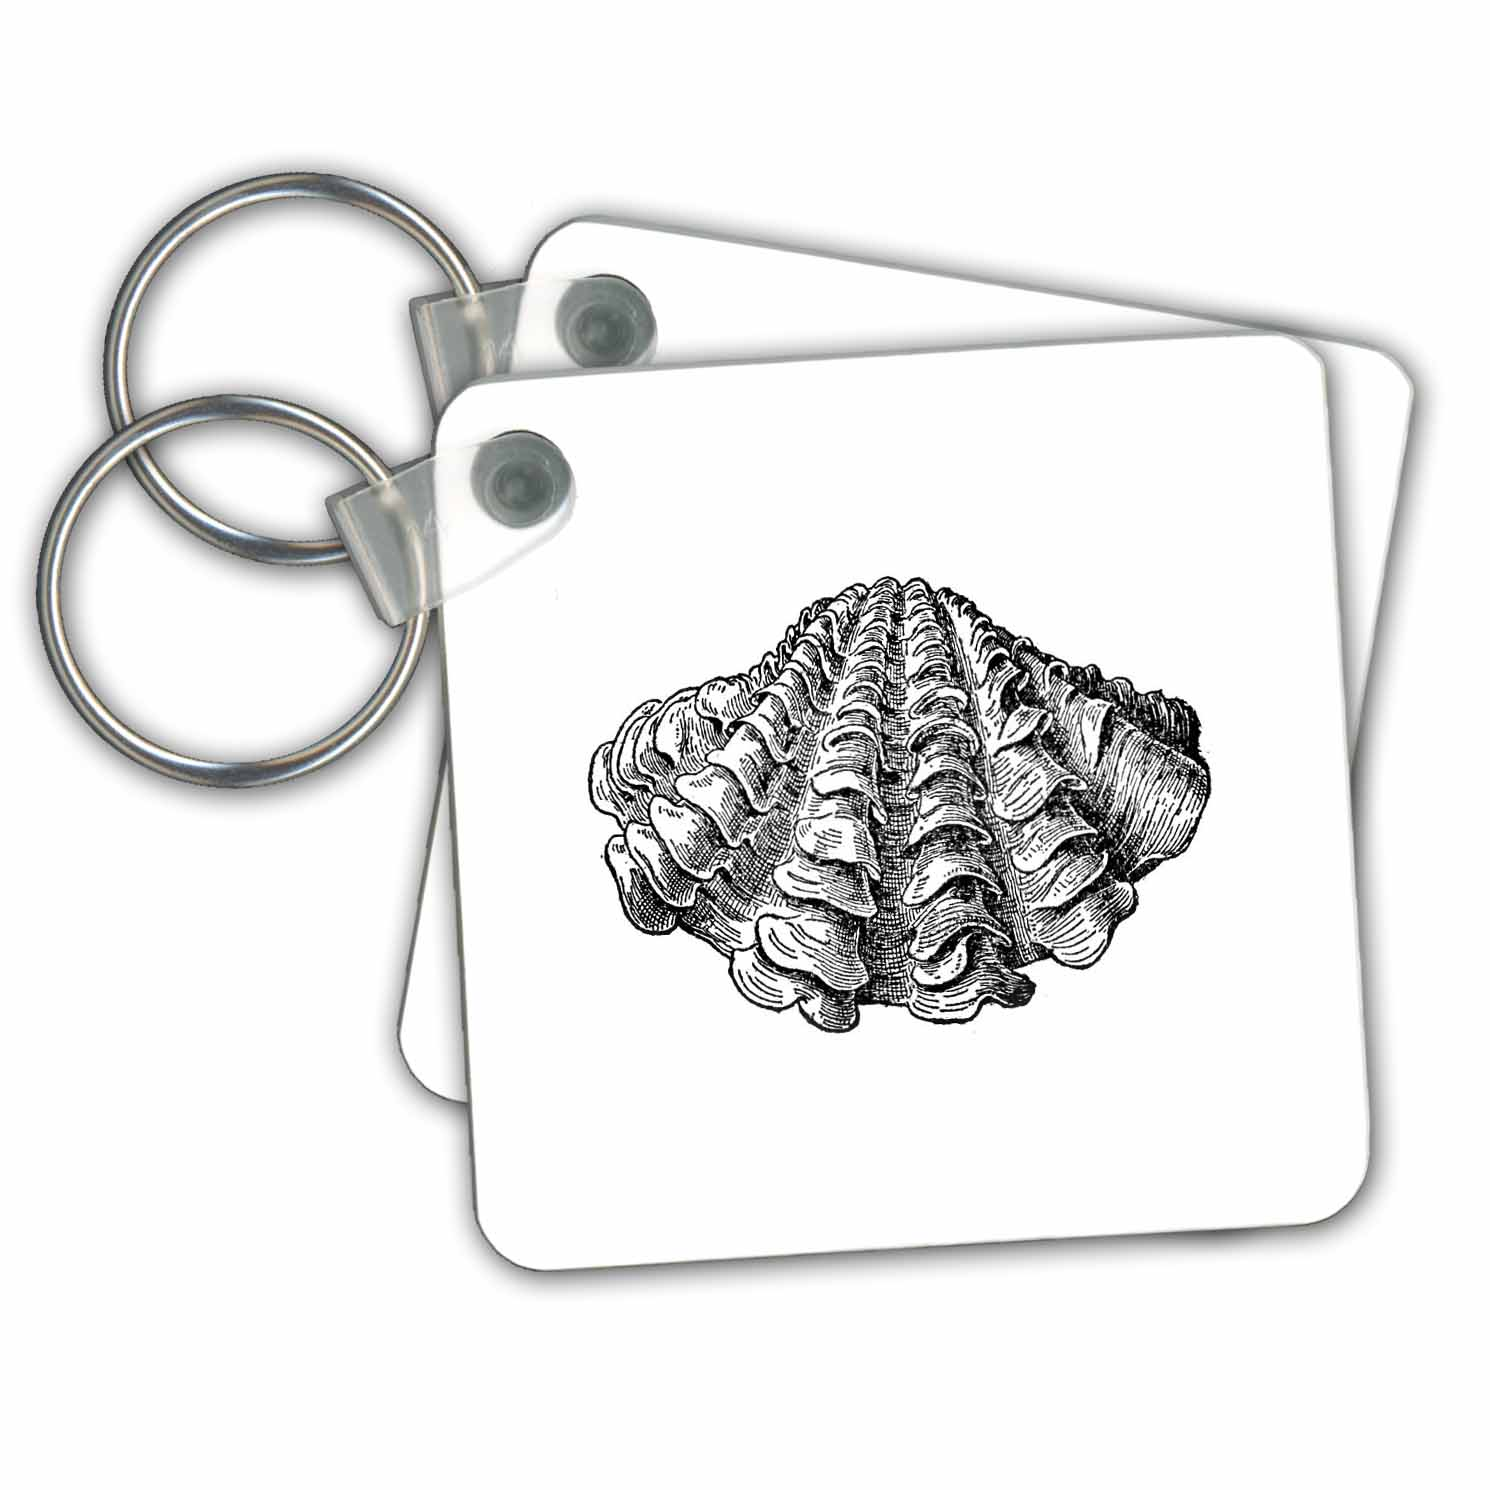 3dRose - InspirationzStore Vintage Art - Black and white seashell illustration. Sea shell clam beach ocean life - Key Chains at Sears.com